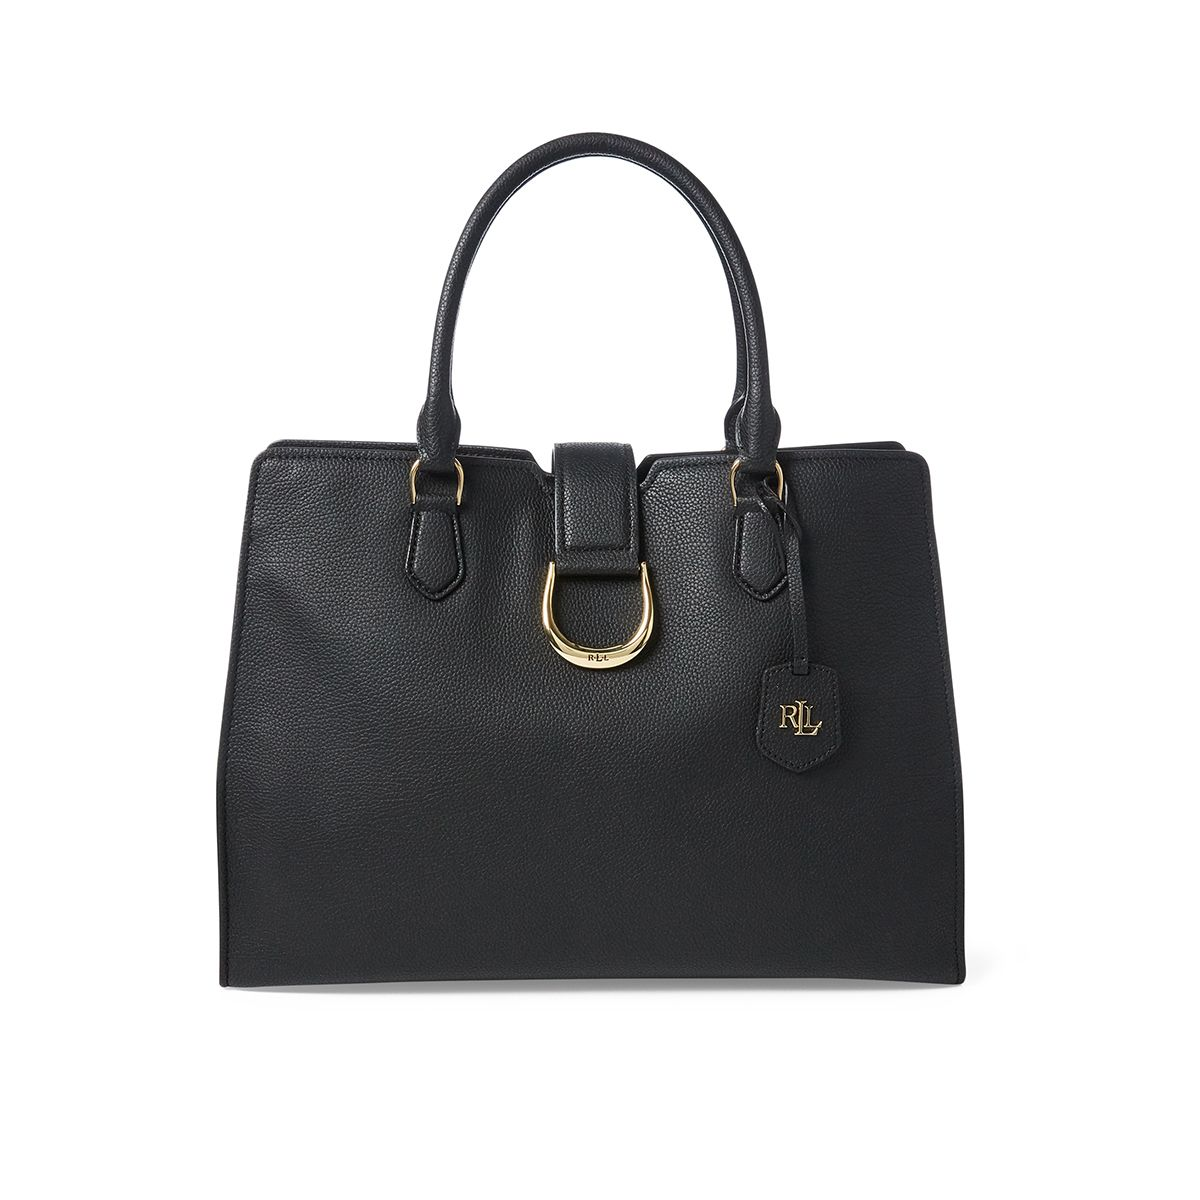 Ralph Lauren Handbags   Accessories - Macy s 3b6b3437c4